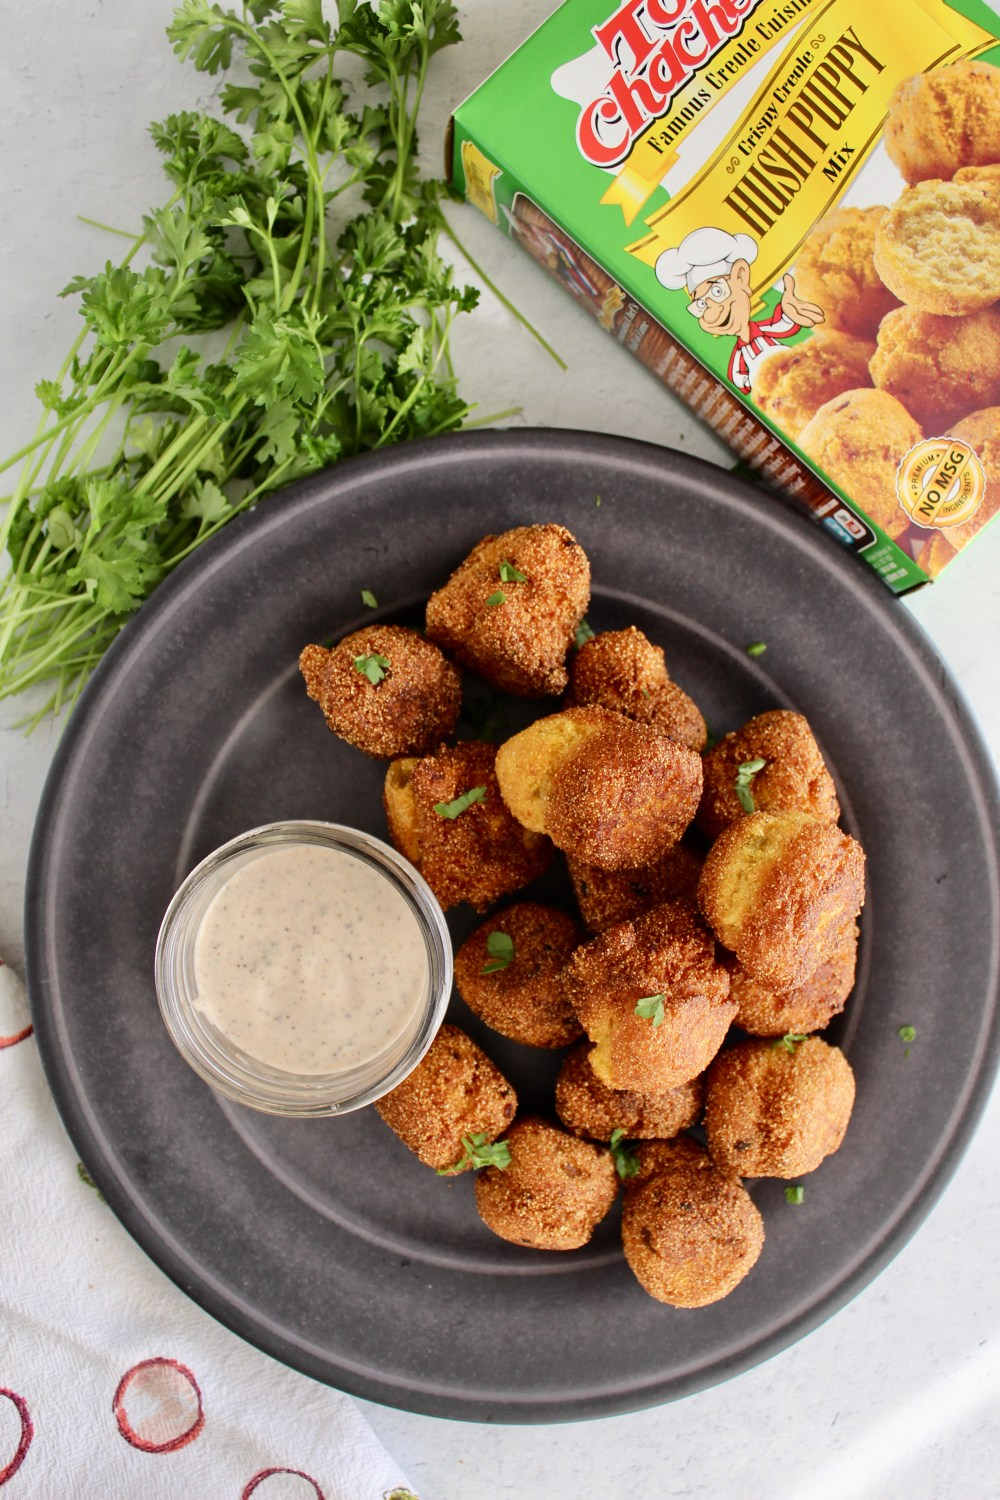 hush puppies on a plate